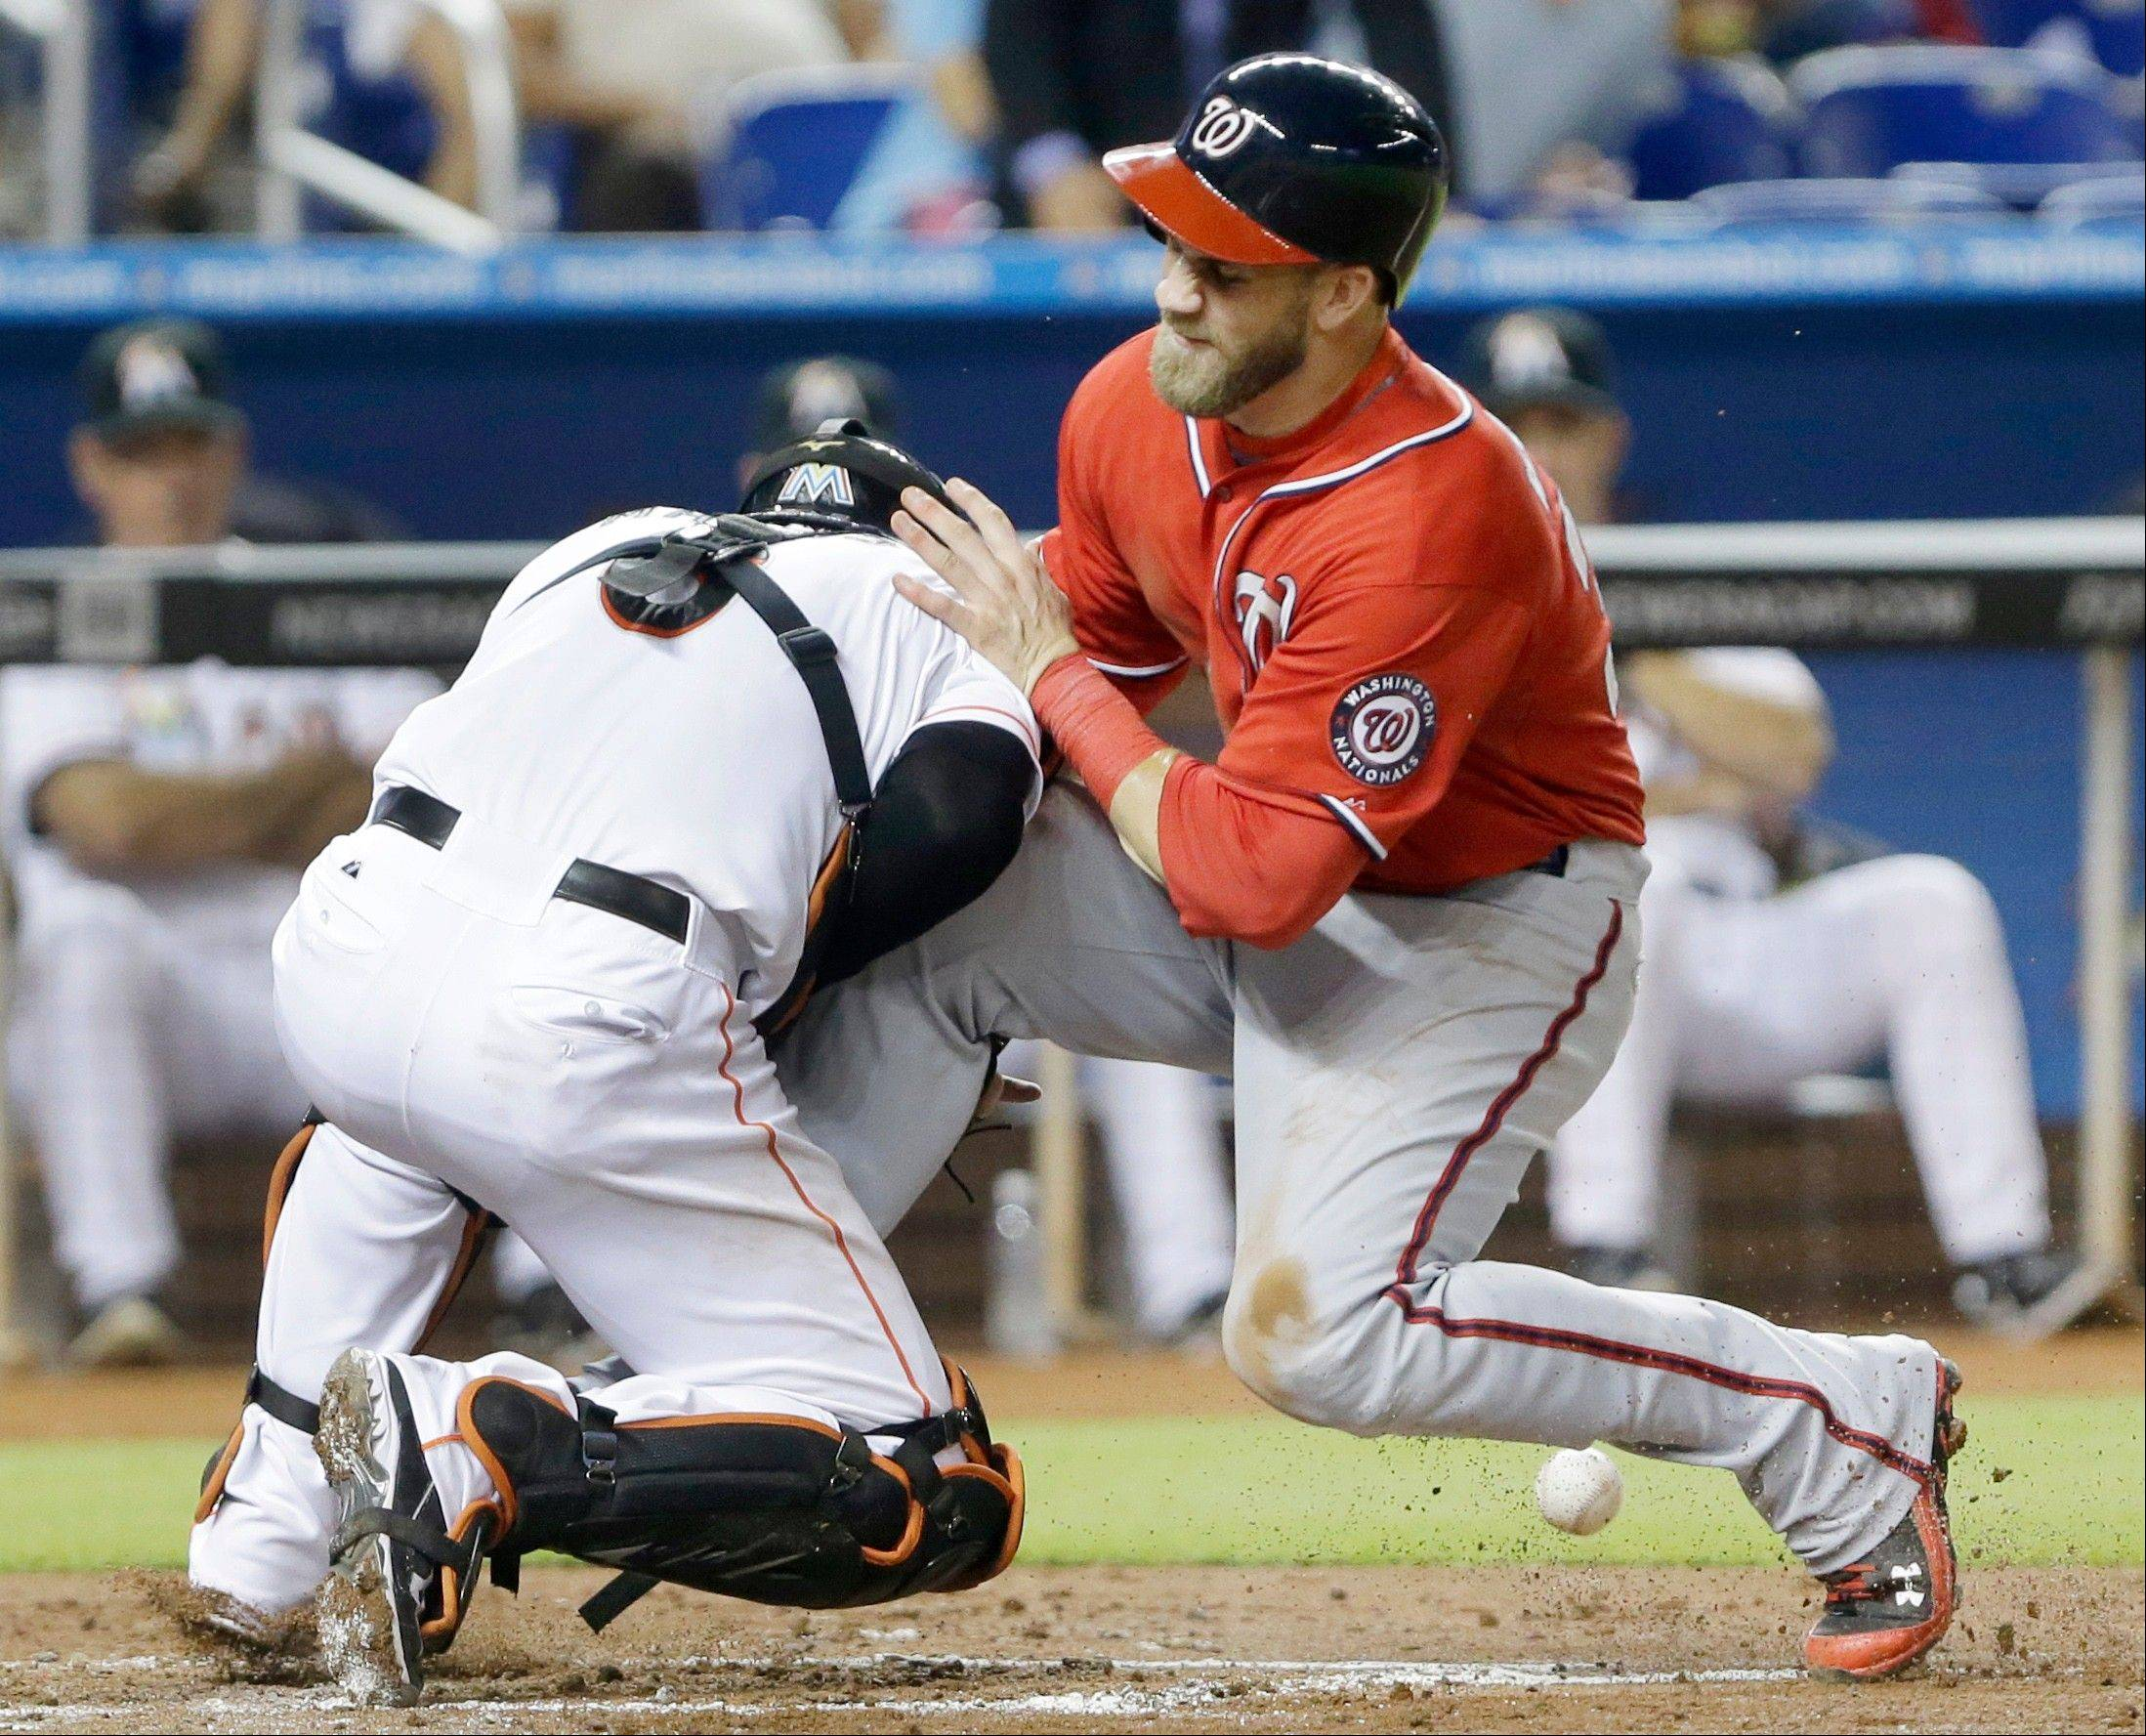 Washington Nationals outfielder Bryce Harper collides with Miami Marlins catcher Jeff Mathis at home plate Saturday during the fourth inning in Miami. Harper scored on a sacrifice fly by Jayson Werth.